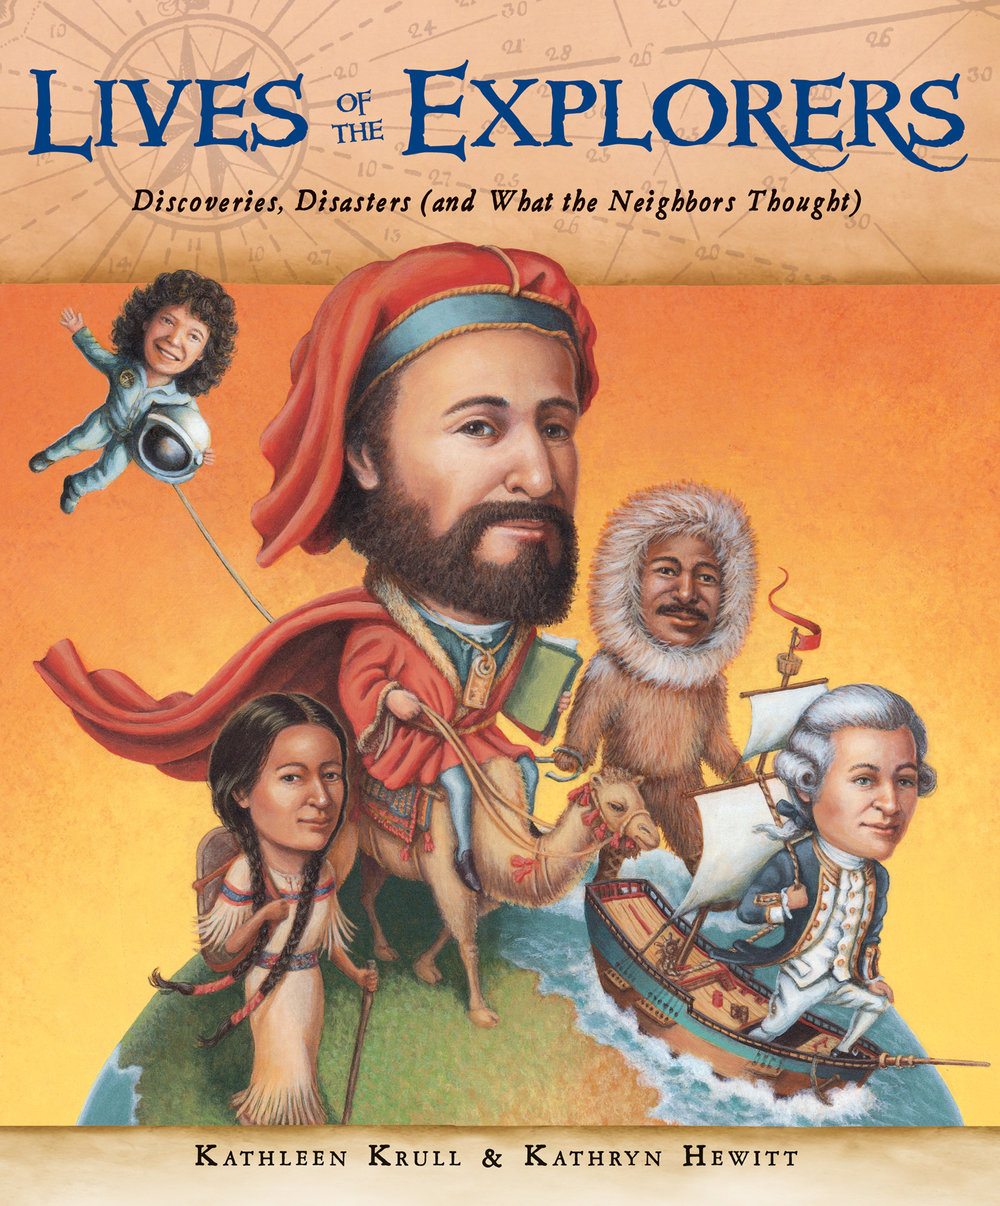 Lives of the Explorers: Discoveries, Disasters (and What the Neighbors Thought) - Kathleen Krull, illustrated by Kathryn Hewitt   Houghton Mifflin Harcourt 2014You might know that Columbus discovered America, Lewis and Clark headed west with Sacajawea, and Sally Ride blasted into space. But what do you really know about these bold explorers? What were they like as kids? What pets or bad habits did they have? And what drove their passion to explore unknown parts of the world? With juicy tidbits about everything from favorite foods to first loves,Lives of the Explorers reveals these fascinating adventurers as both world-changers and real people.